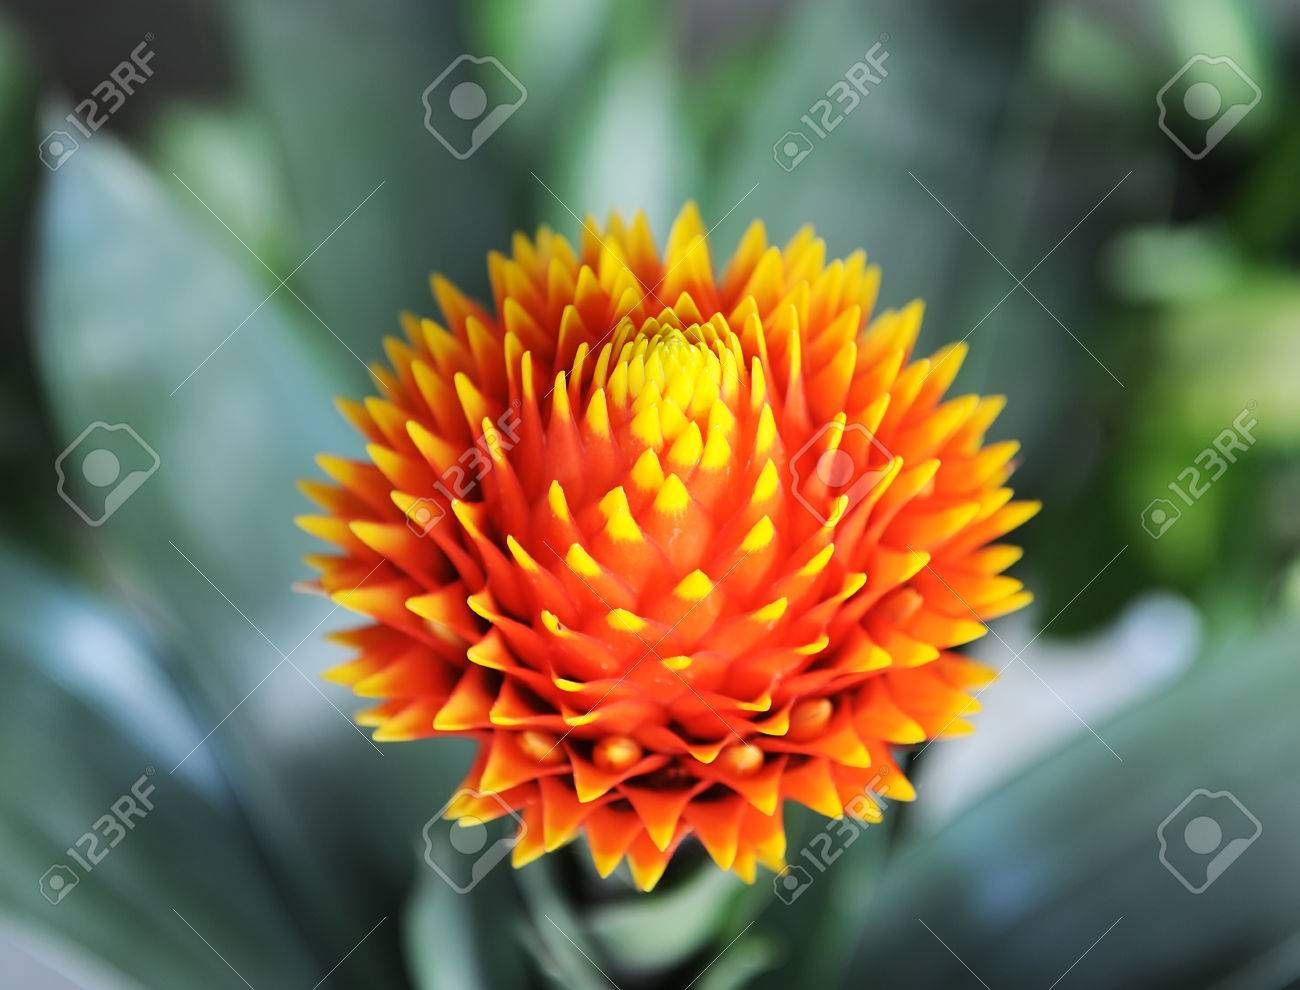 Red Color Of Guzmania Flower In Garden. Stock Photo, Picture And ...